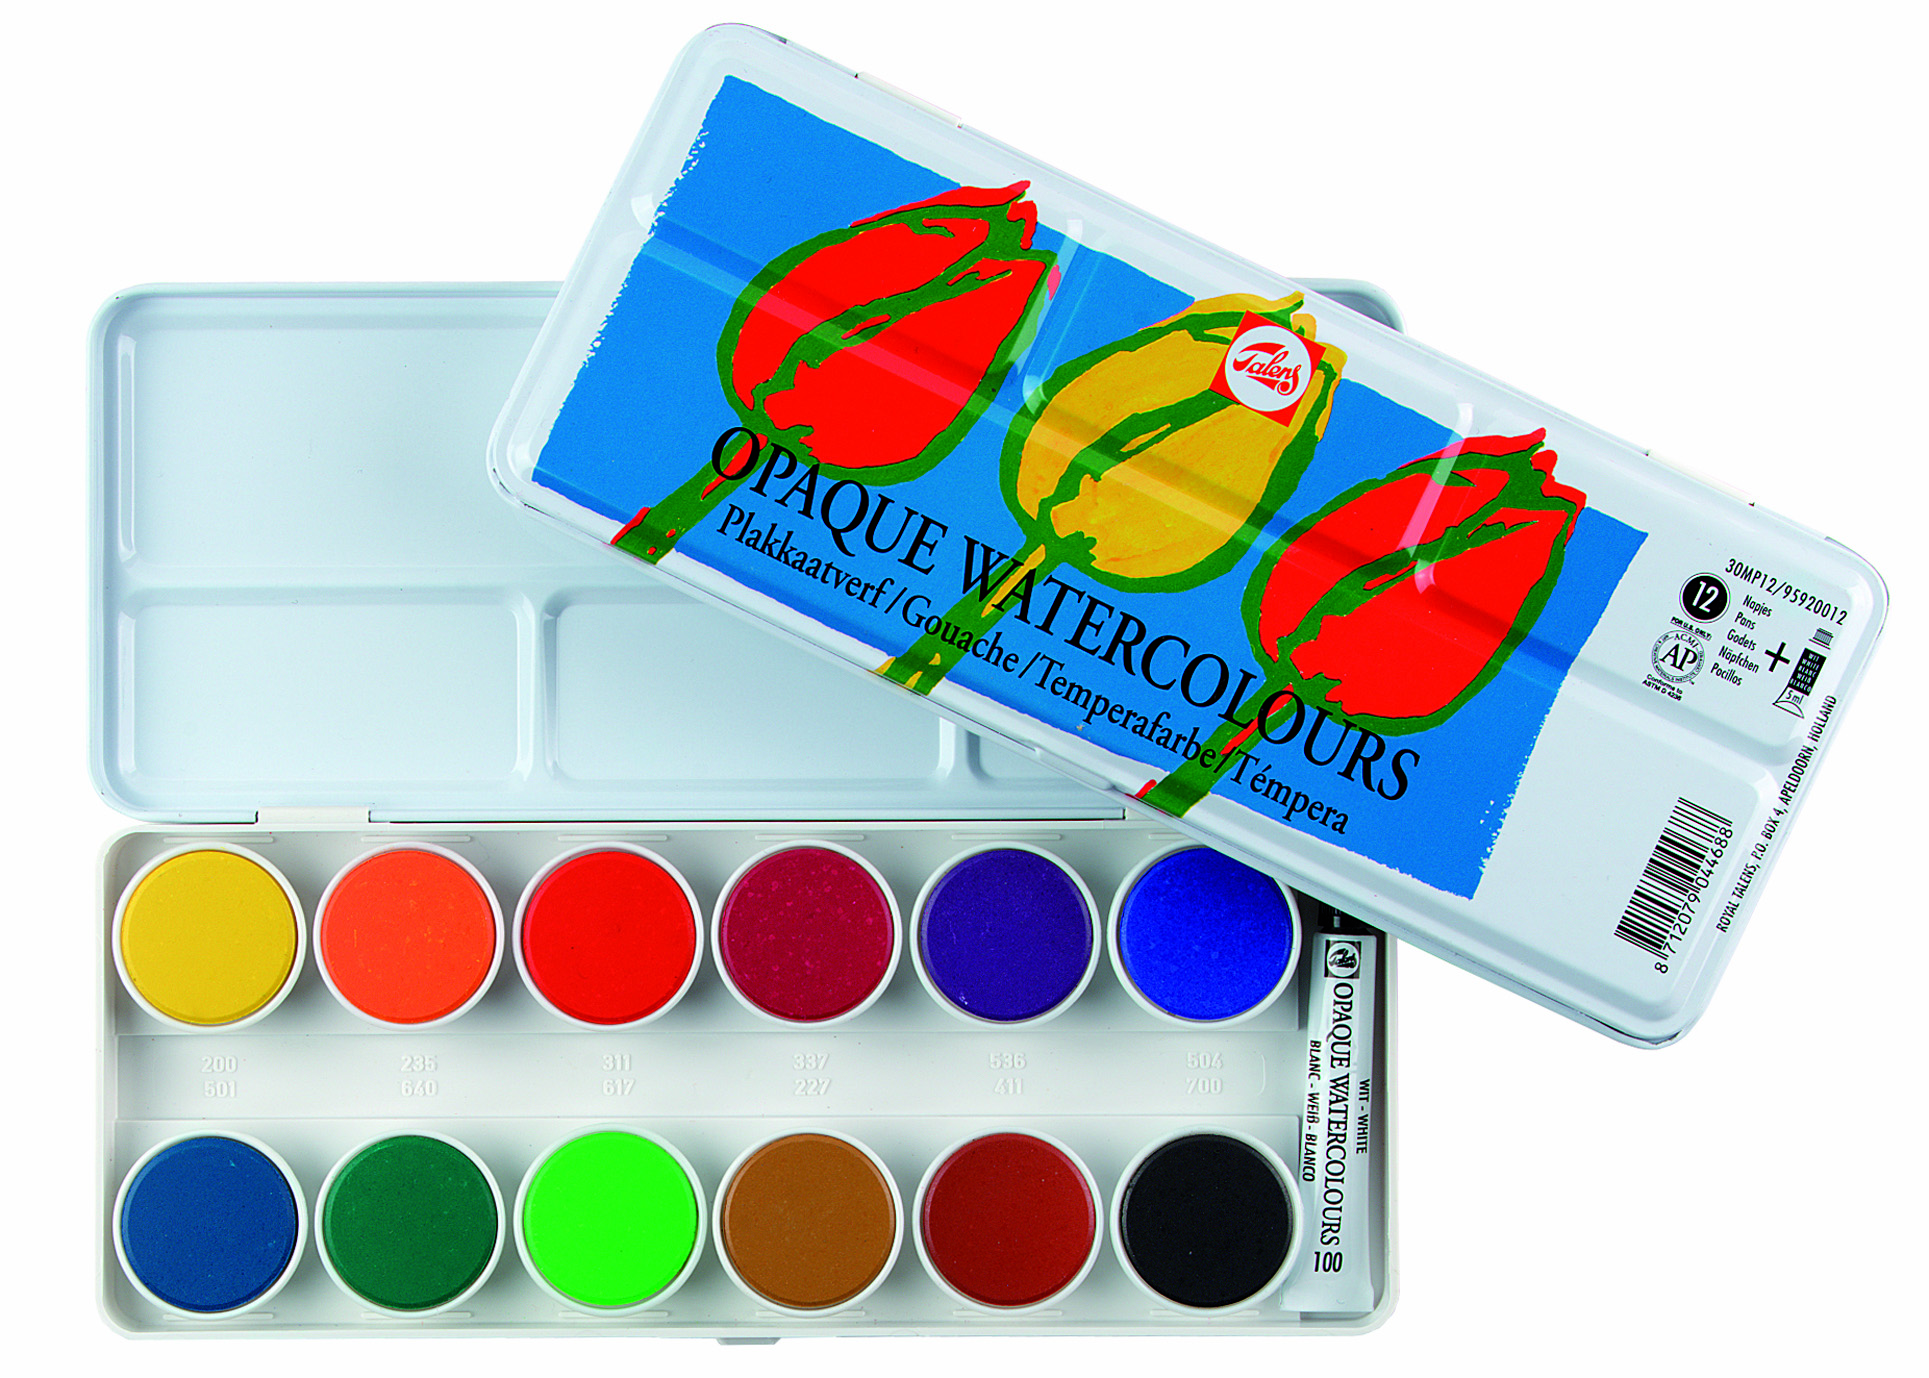 TALENS OPAQUE WATERCOLOURS SET 12